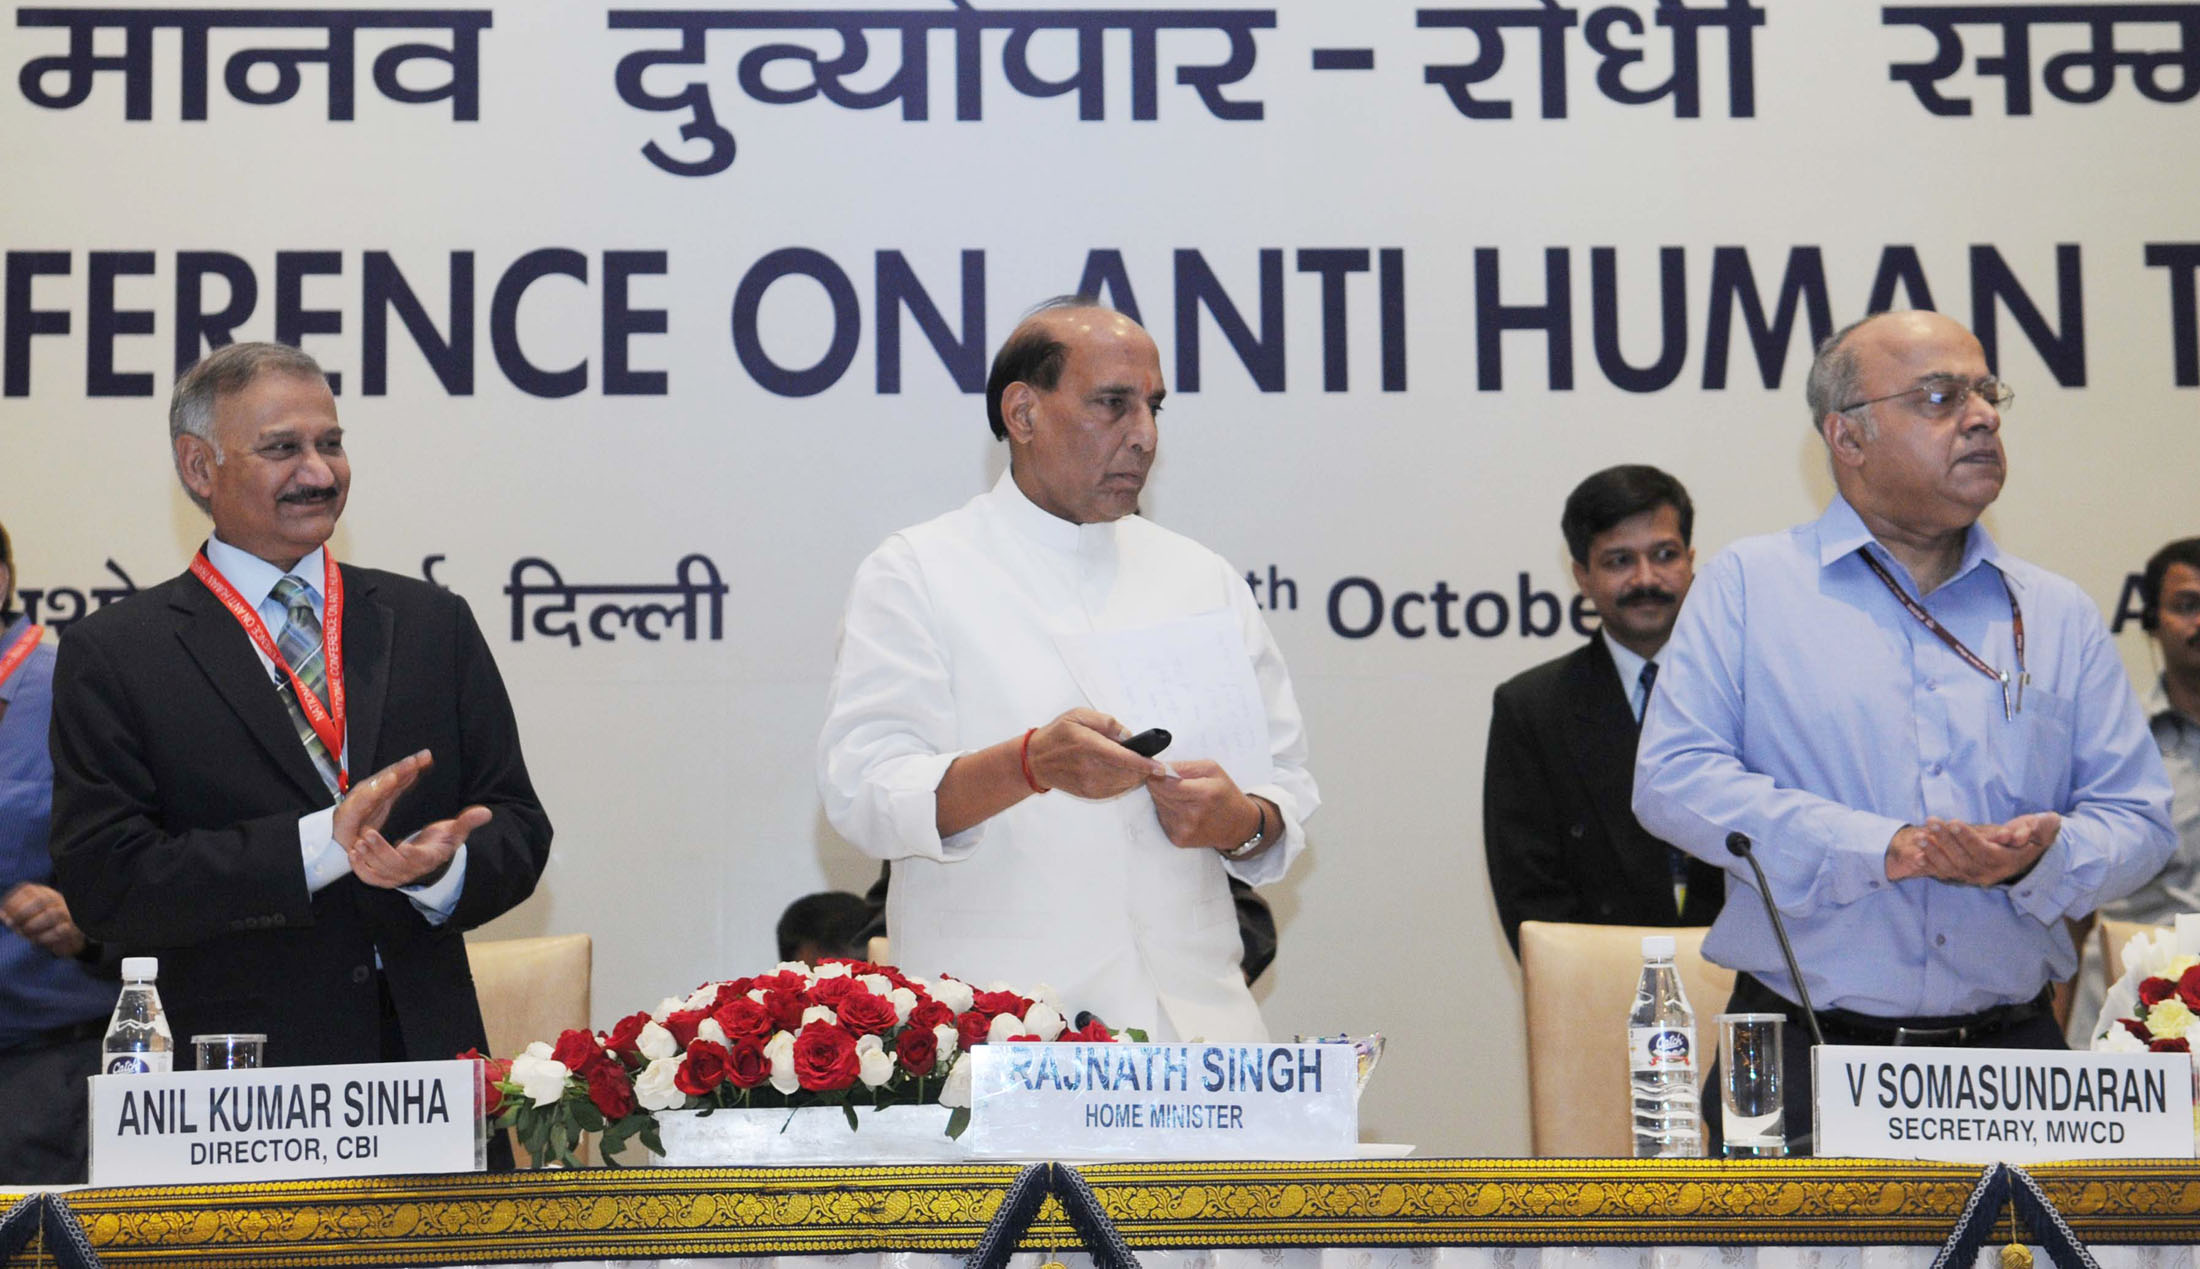 The Union Home Minister, Shri Rajnath Singh launching the 'mysecurtiy.gov.in', at the inauguration of the National Conference on Anti Human Trafficking, in New Delhi on October 07, 2015. The Secretary, Ministry of Women and Child Development, Shri V. Somasundaran and the Director, CBI, Shri Anil Kumar Sinha are also seen.